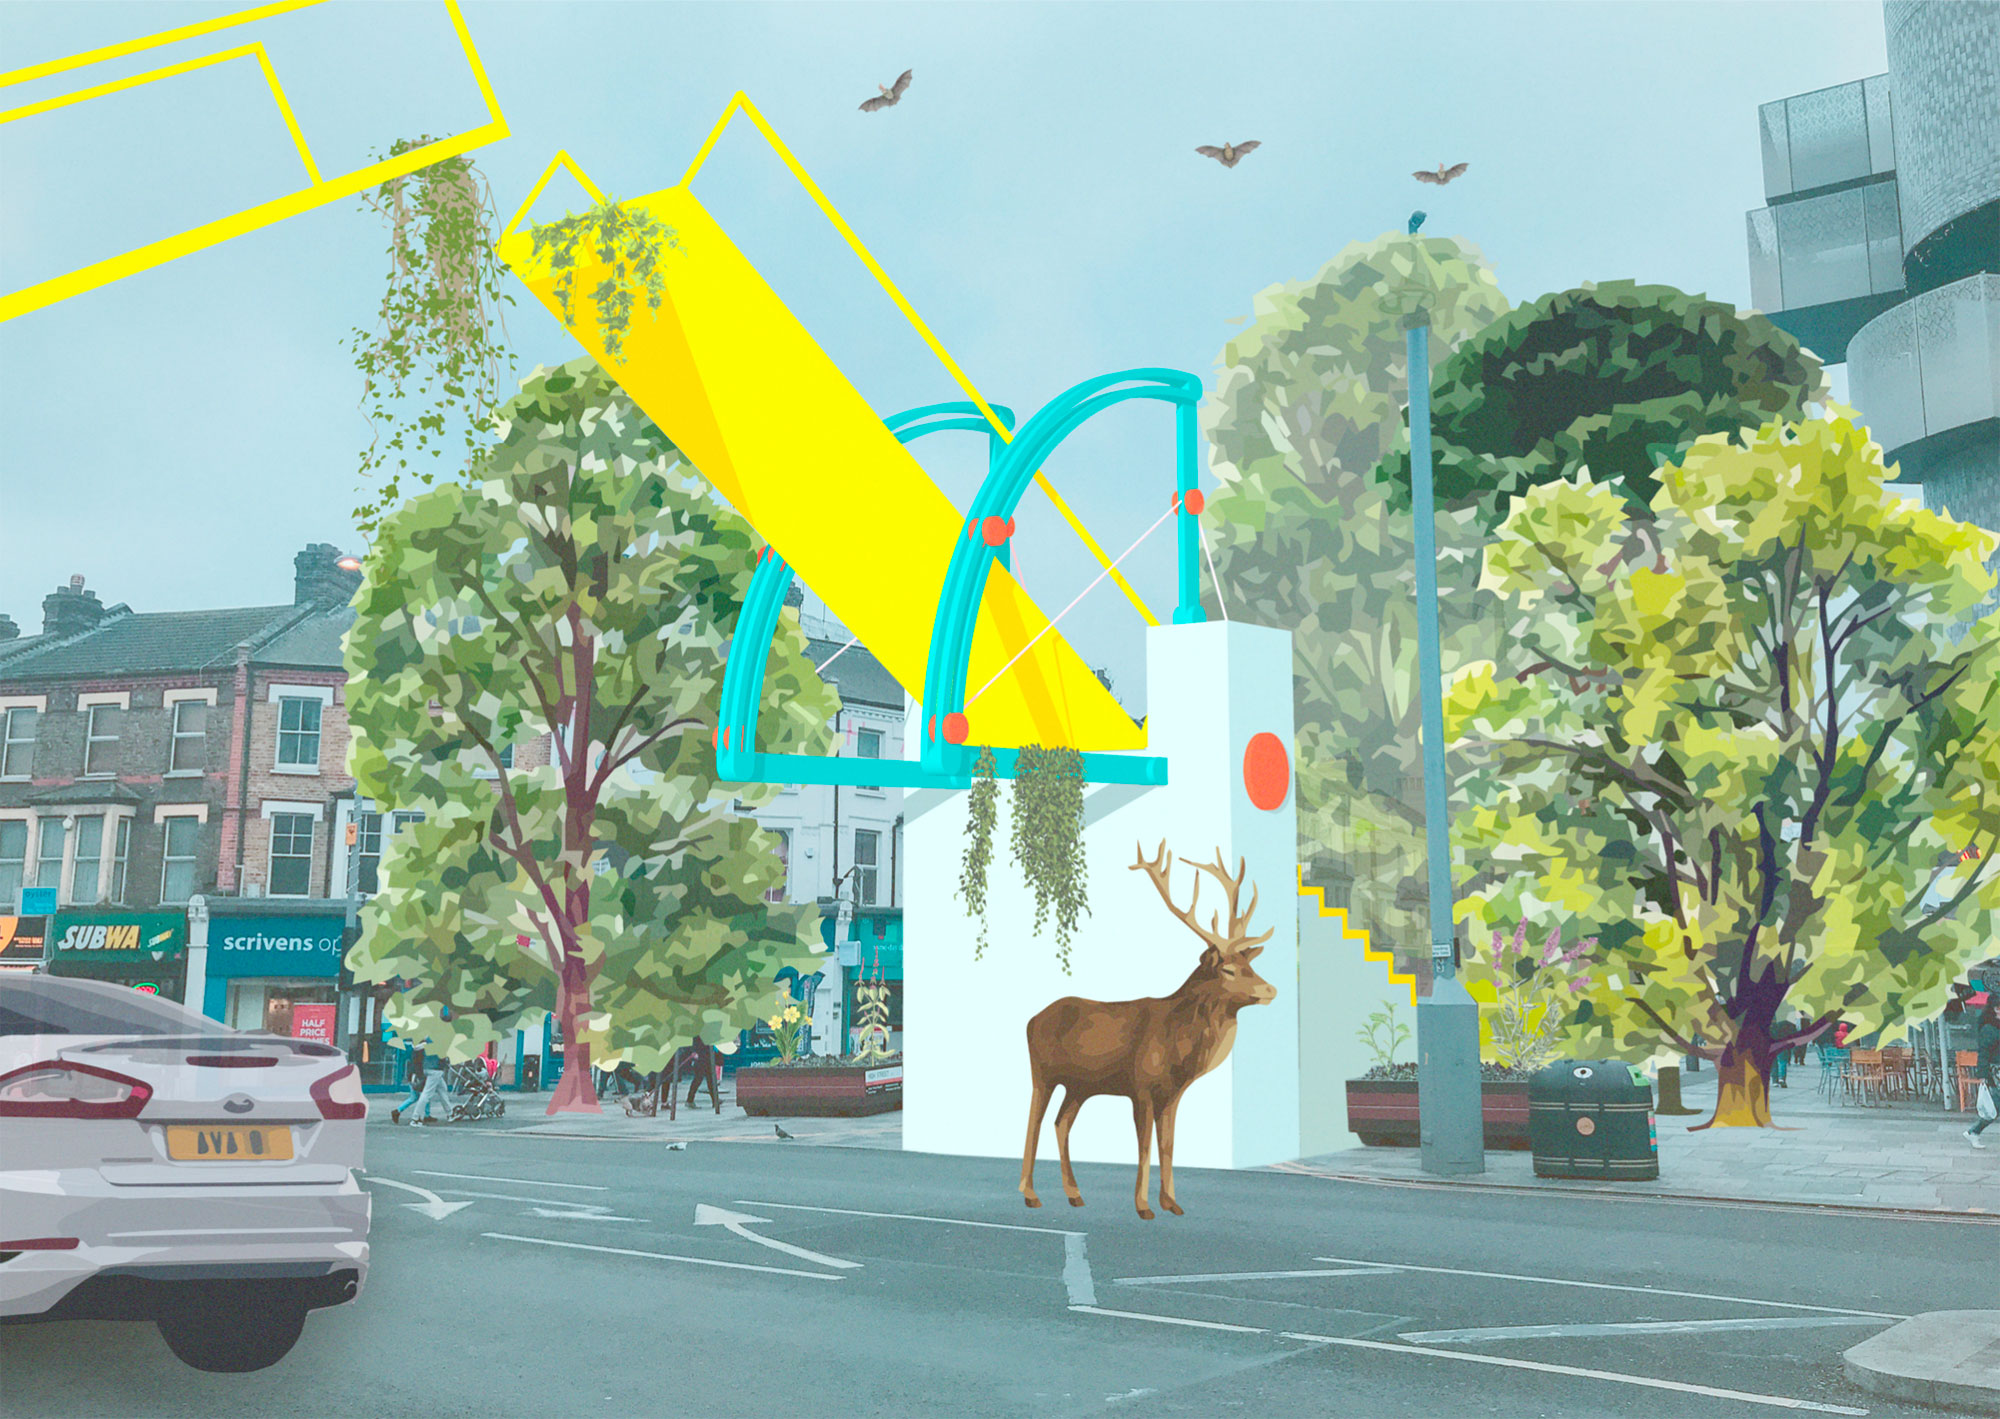 A drawbridge is one of a series of imagined interventions that create a new journey through the borough.